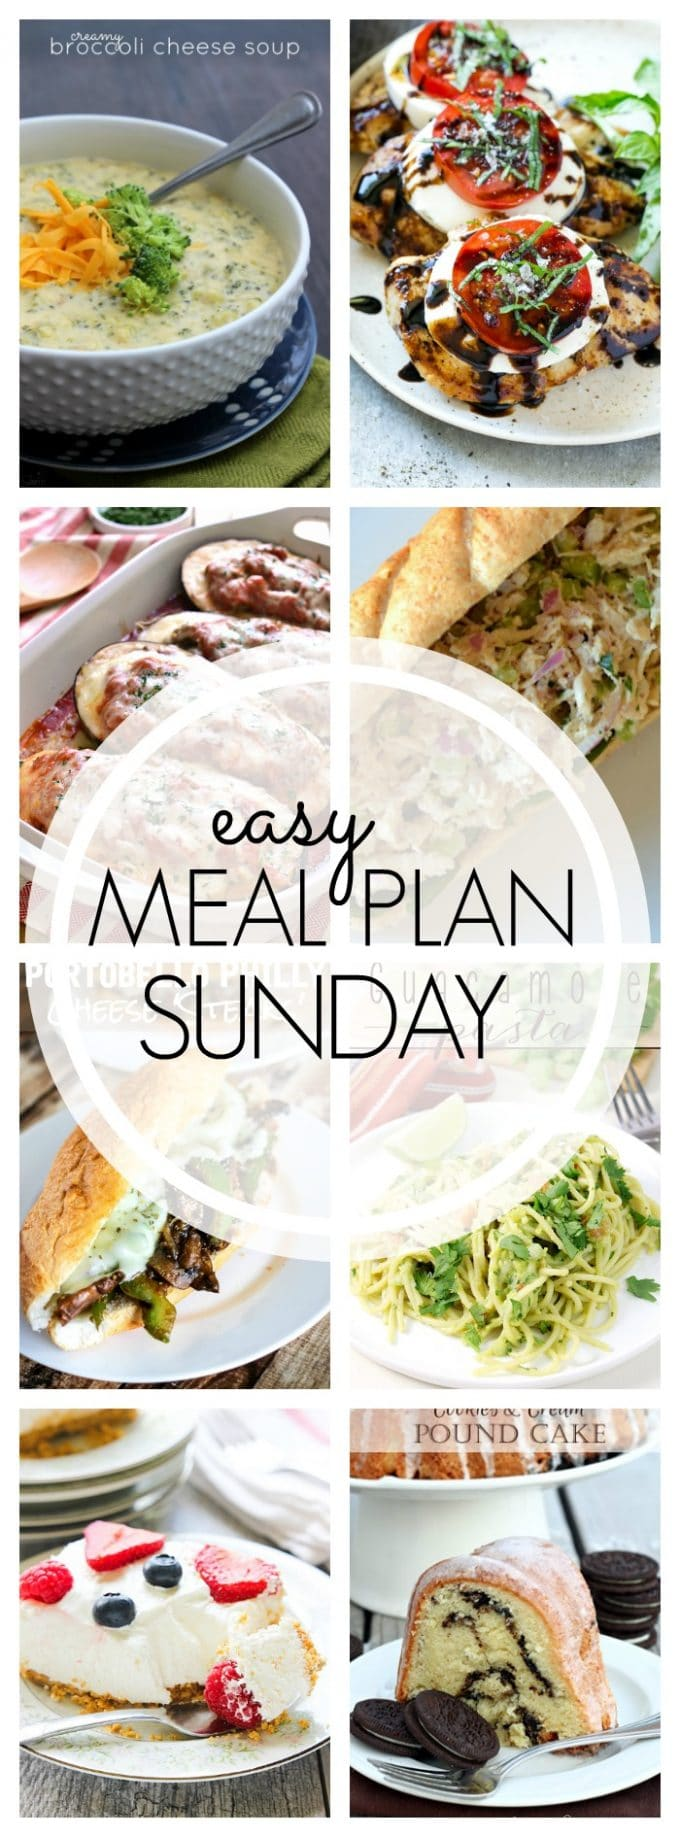 Easy Meal Plan Sunday - Week 61